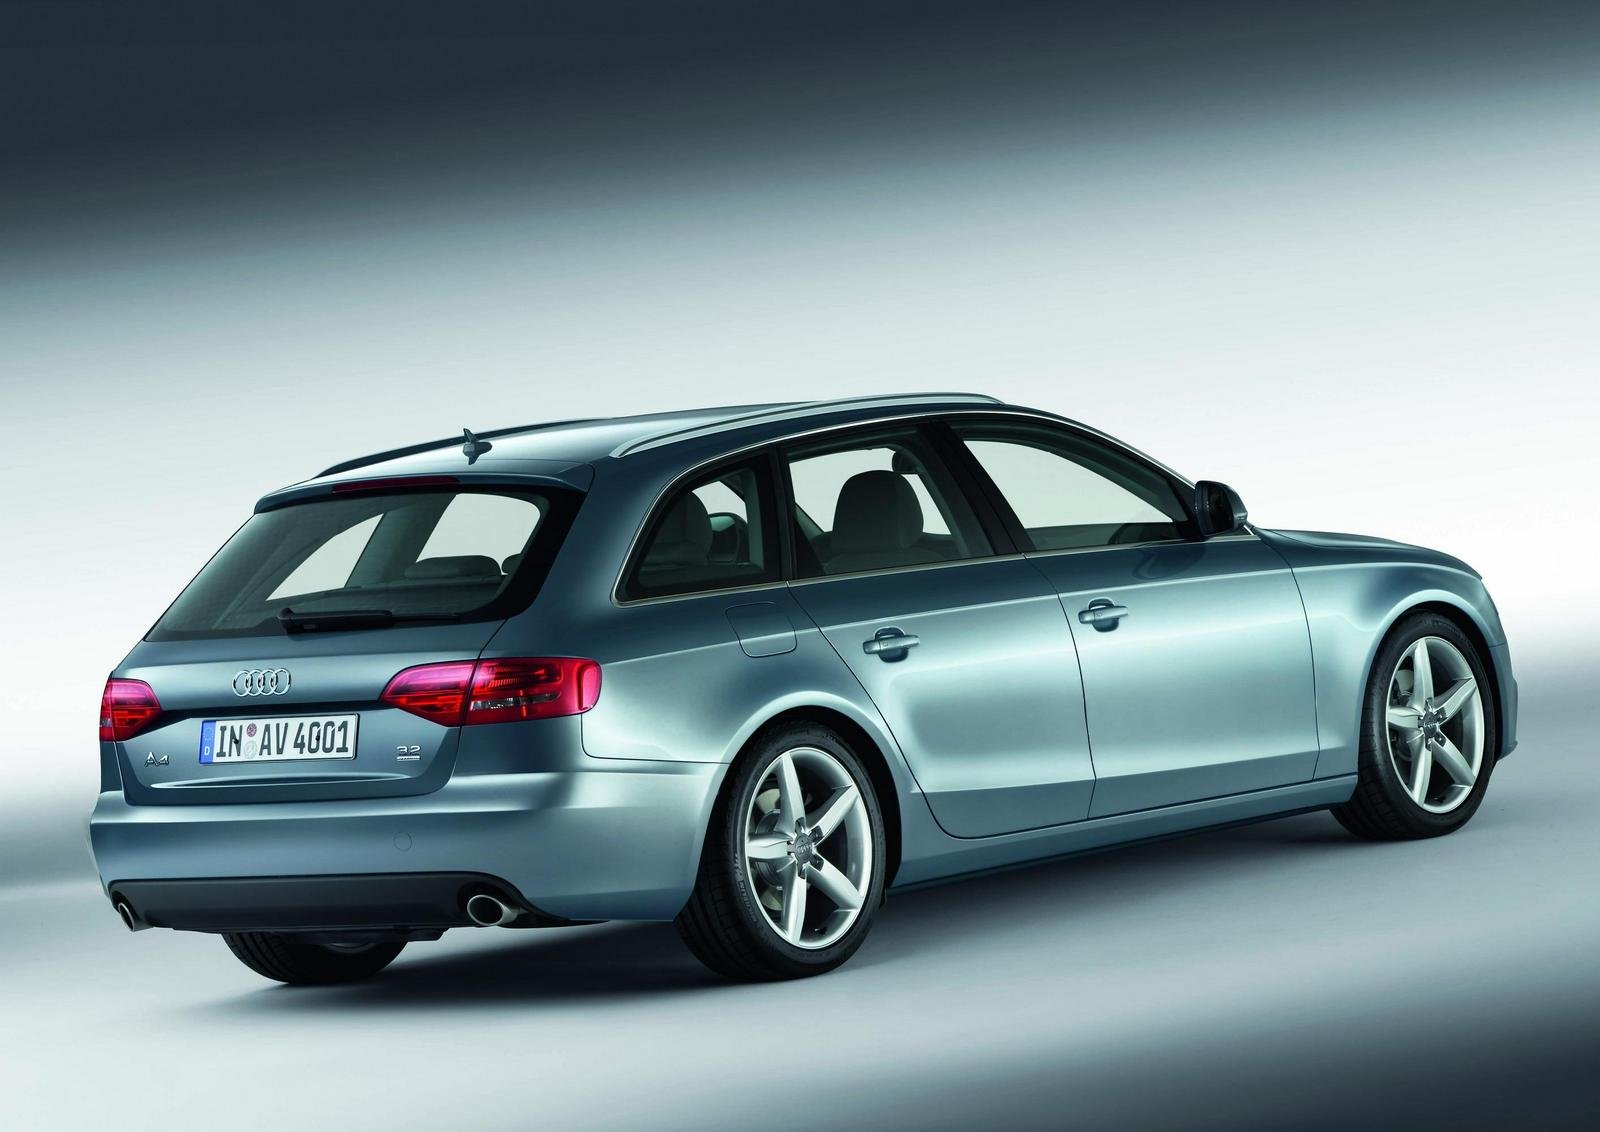 2009 audi a4 avant picture 283128 car review top speed. Black Bedroom Furniture Sets. Home Design Ideas